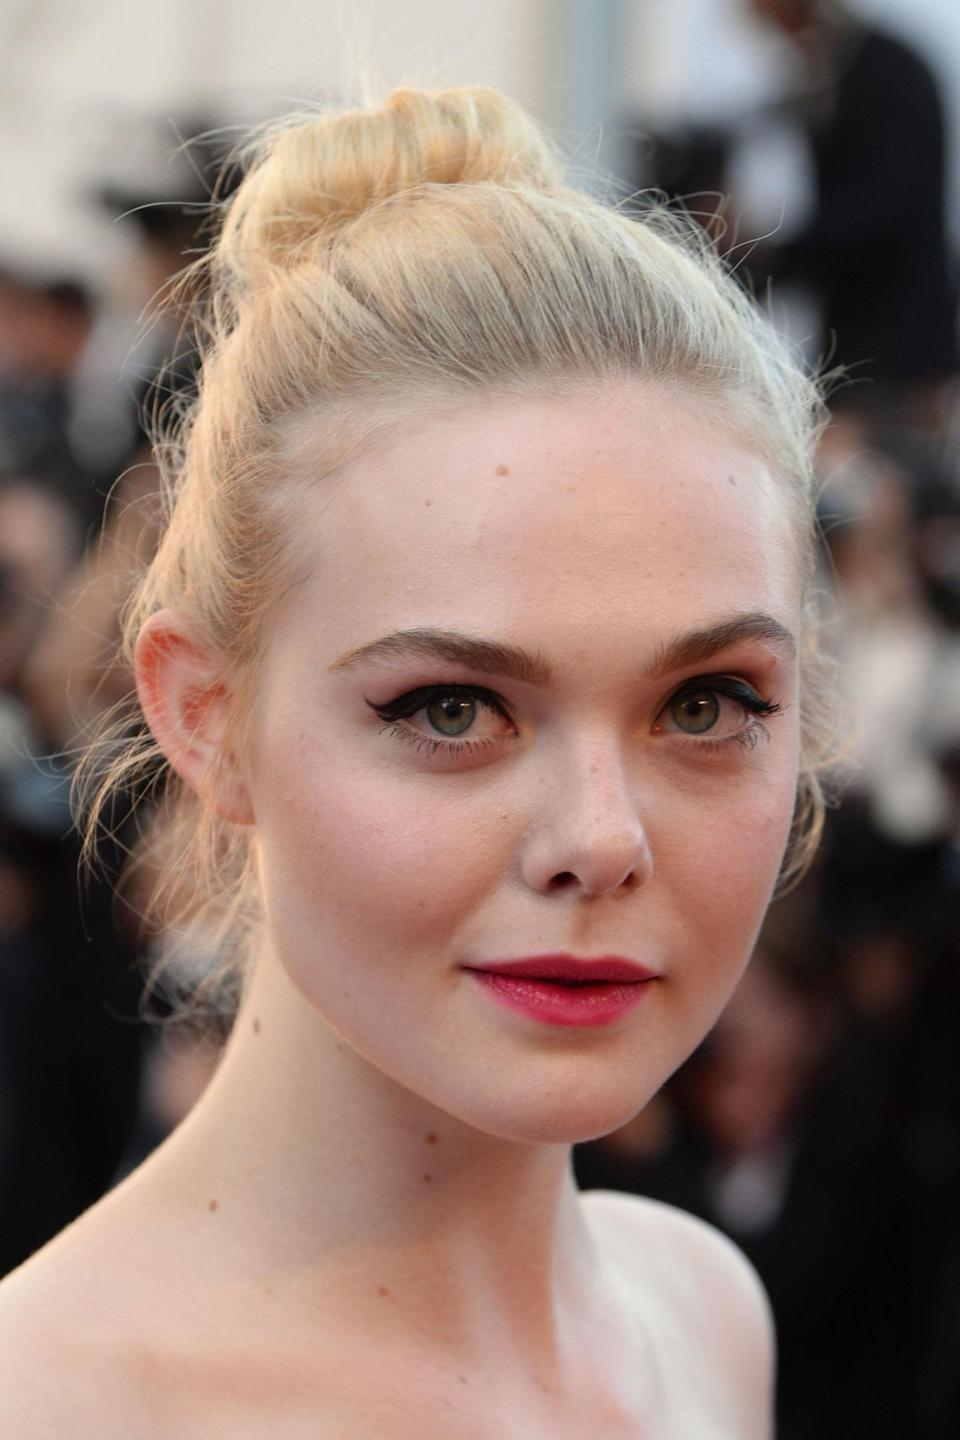 <p>L'Oreal Paris' latest recruit, Elle Fanning balanced her cute ballerina bun with vampy make-up; cate eyes and hot pink lips.</p>